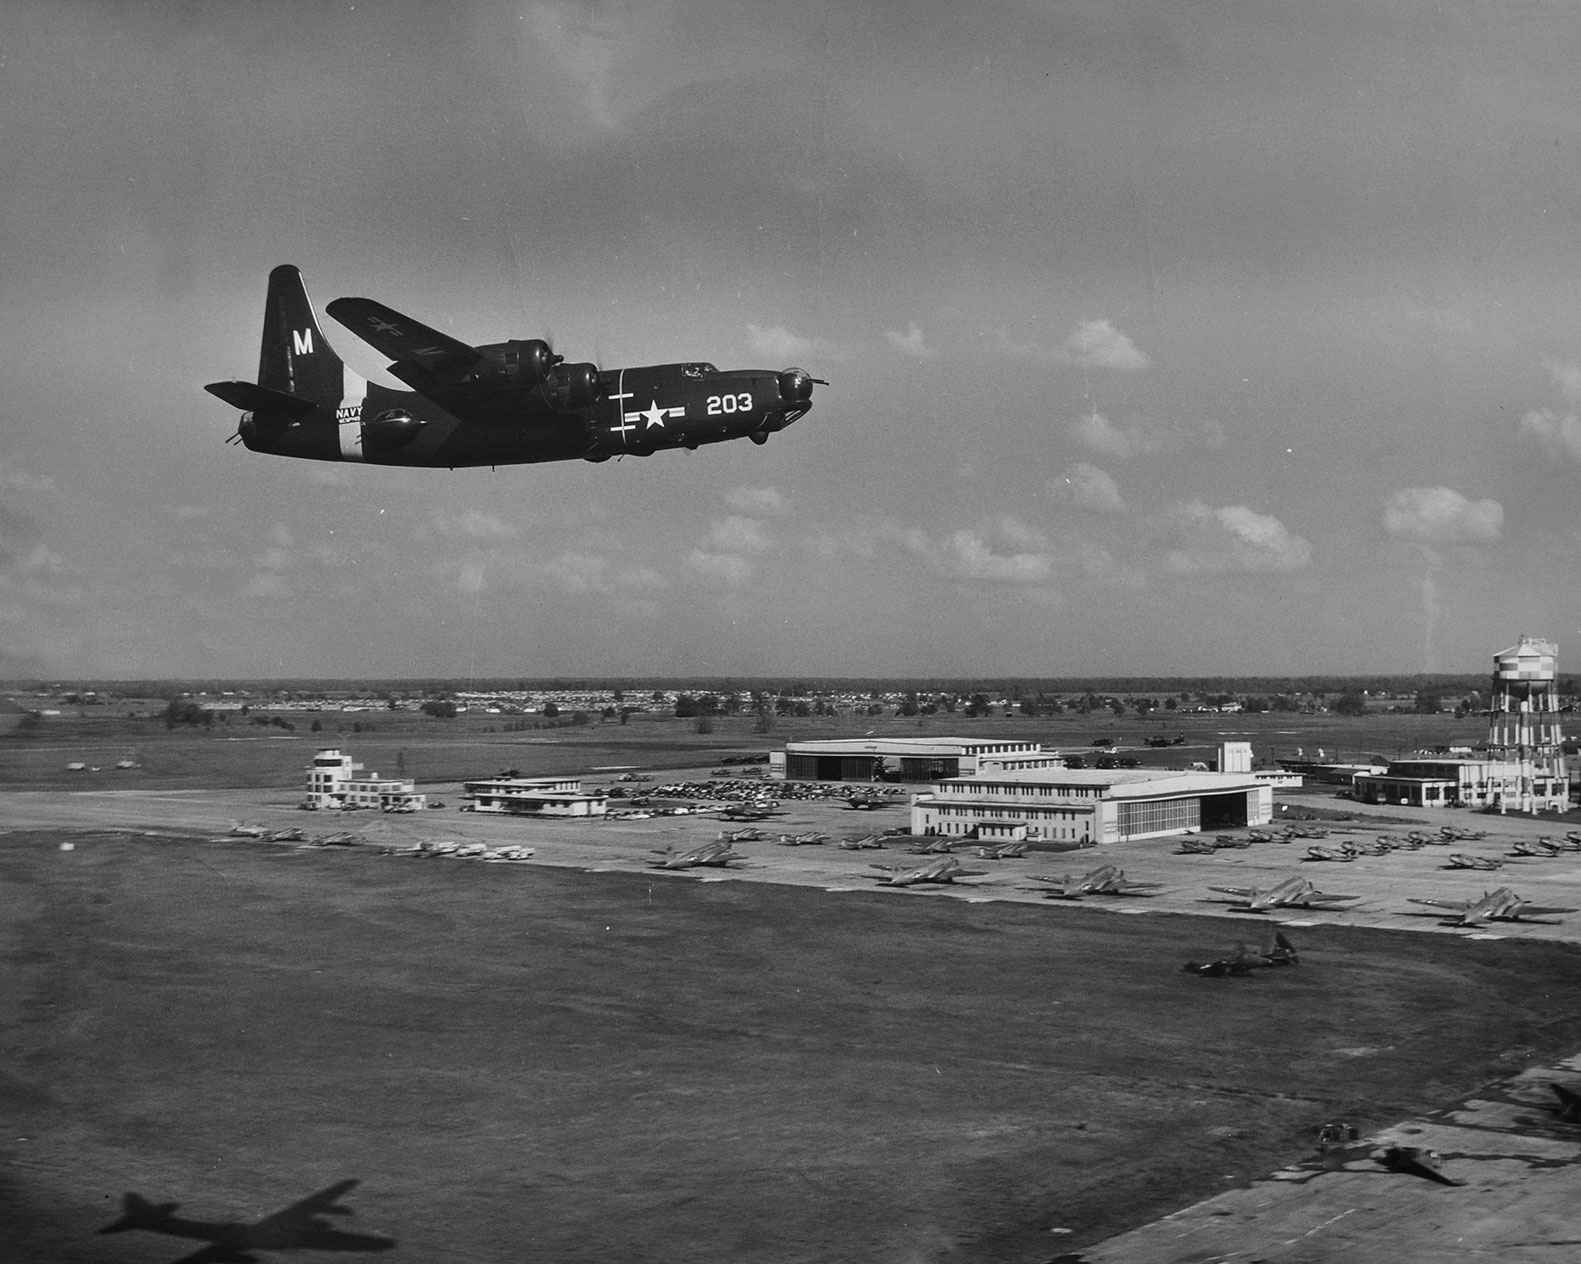 Black and white image of a old vintage four engine aircraft flying over NQA airport